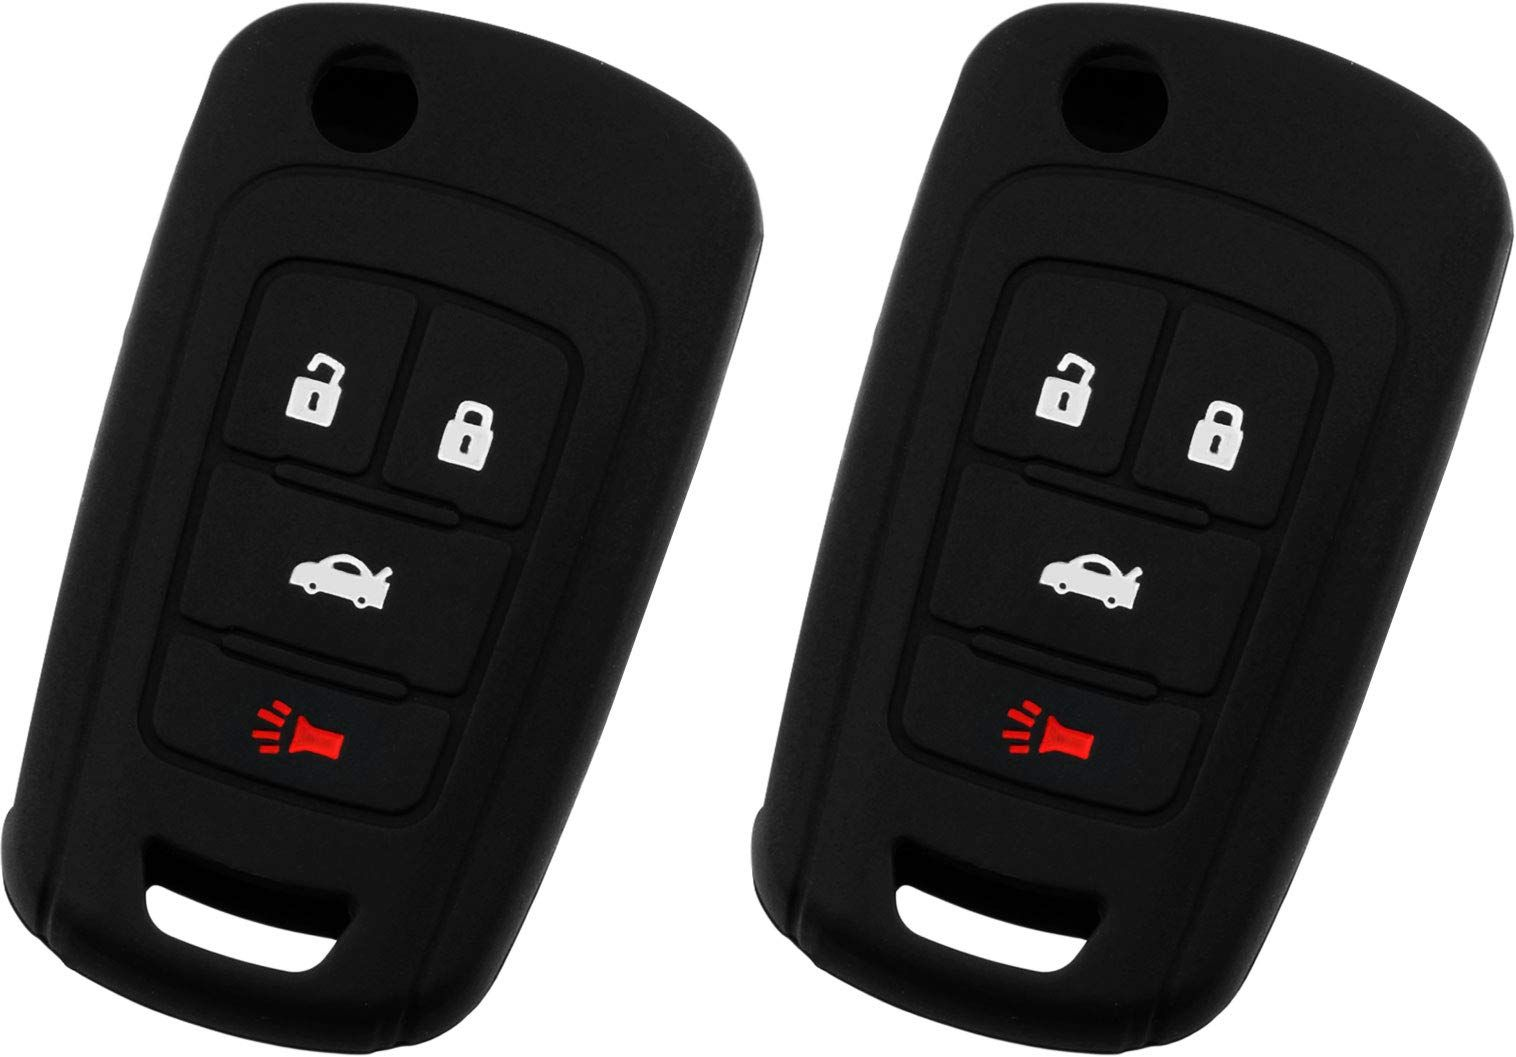 Keyguardz Keyless Entry Remote Car Key Fob Outer Shell Cover Soft Rubber Protective Case For Chevy Buick Gmc Oht01060512 In 2020 Car Key Fob Protective Cases Buick Gmc